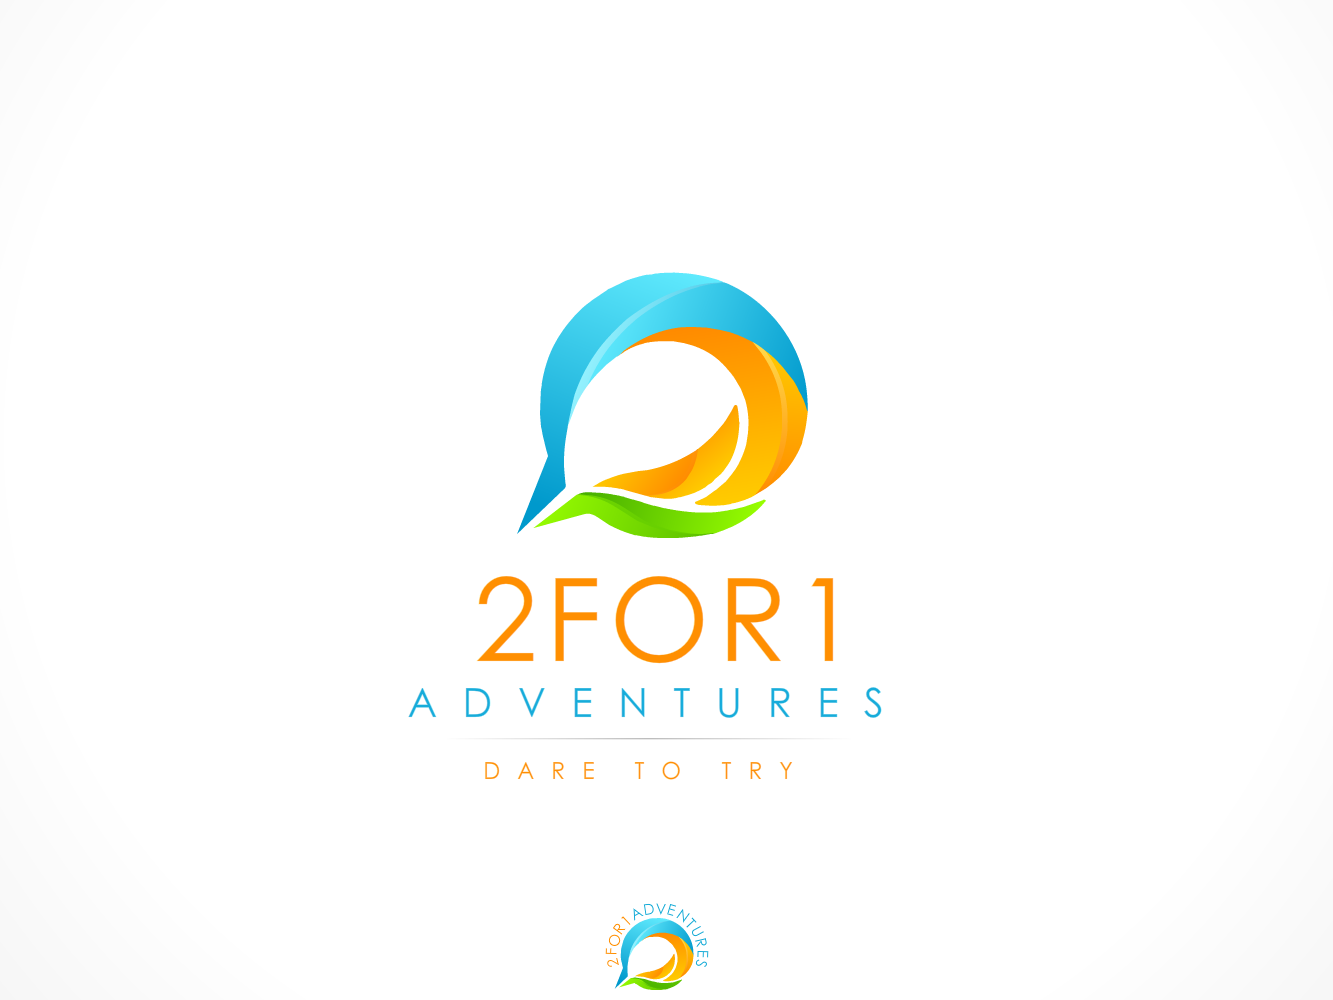 Logo needed for 2 for 1 Adventures